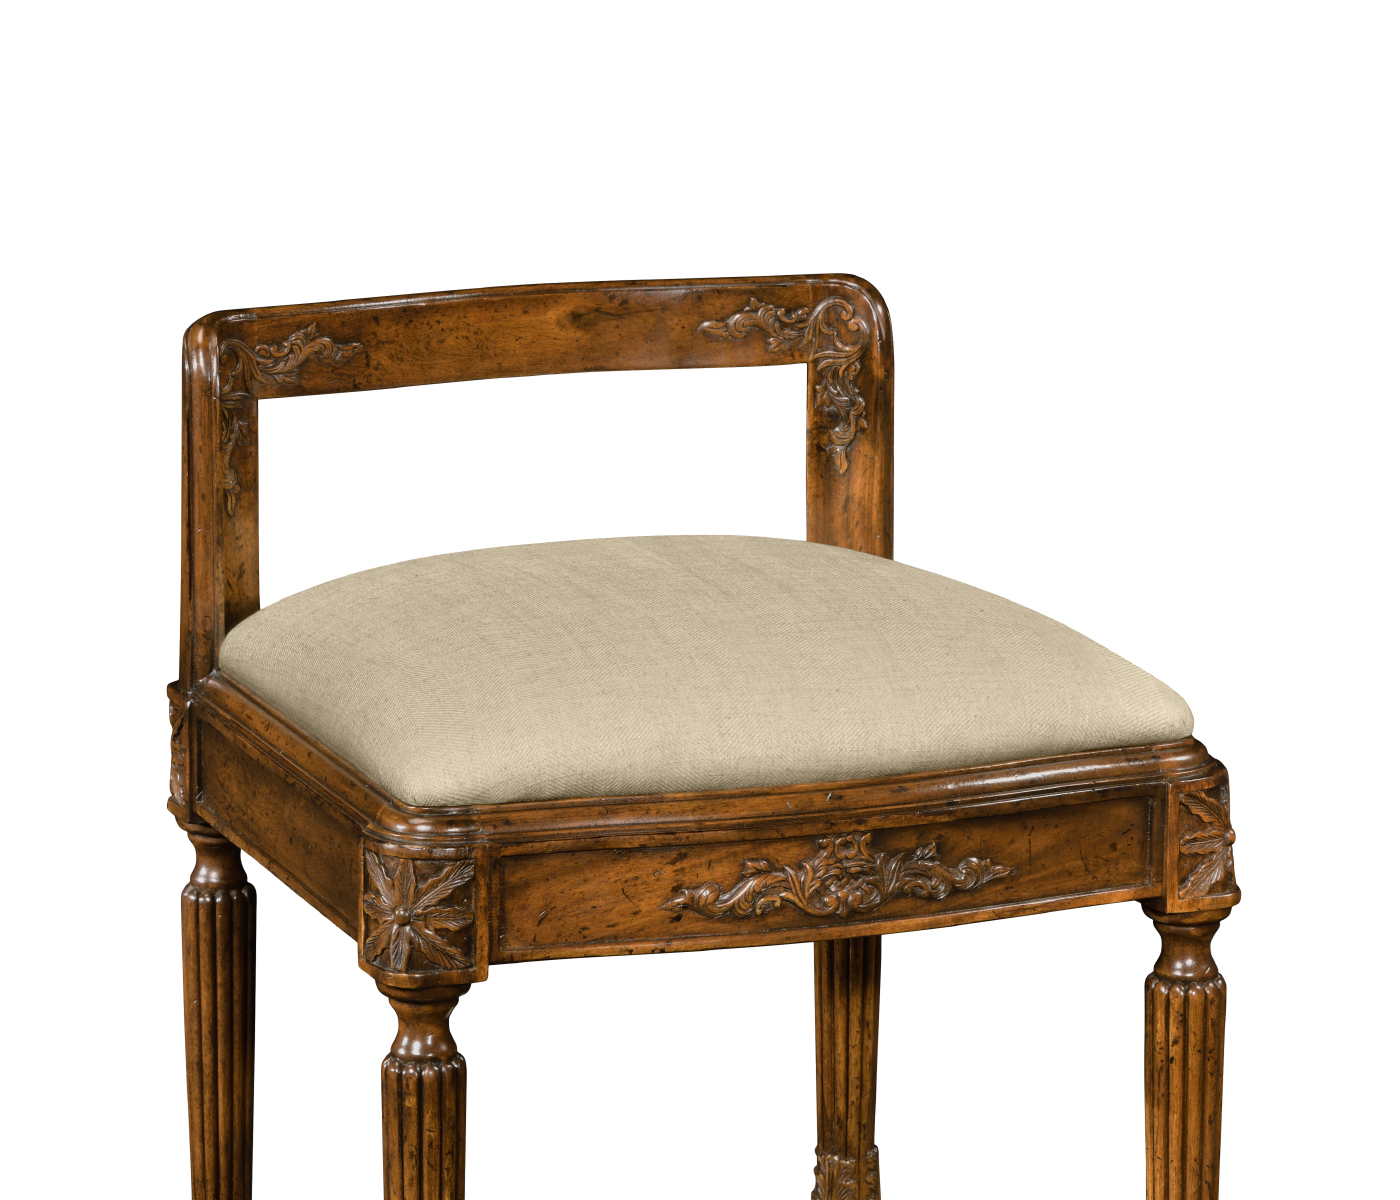 French empire style dressing stool